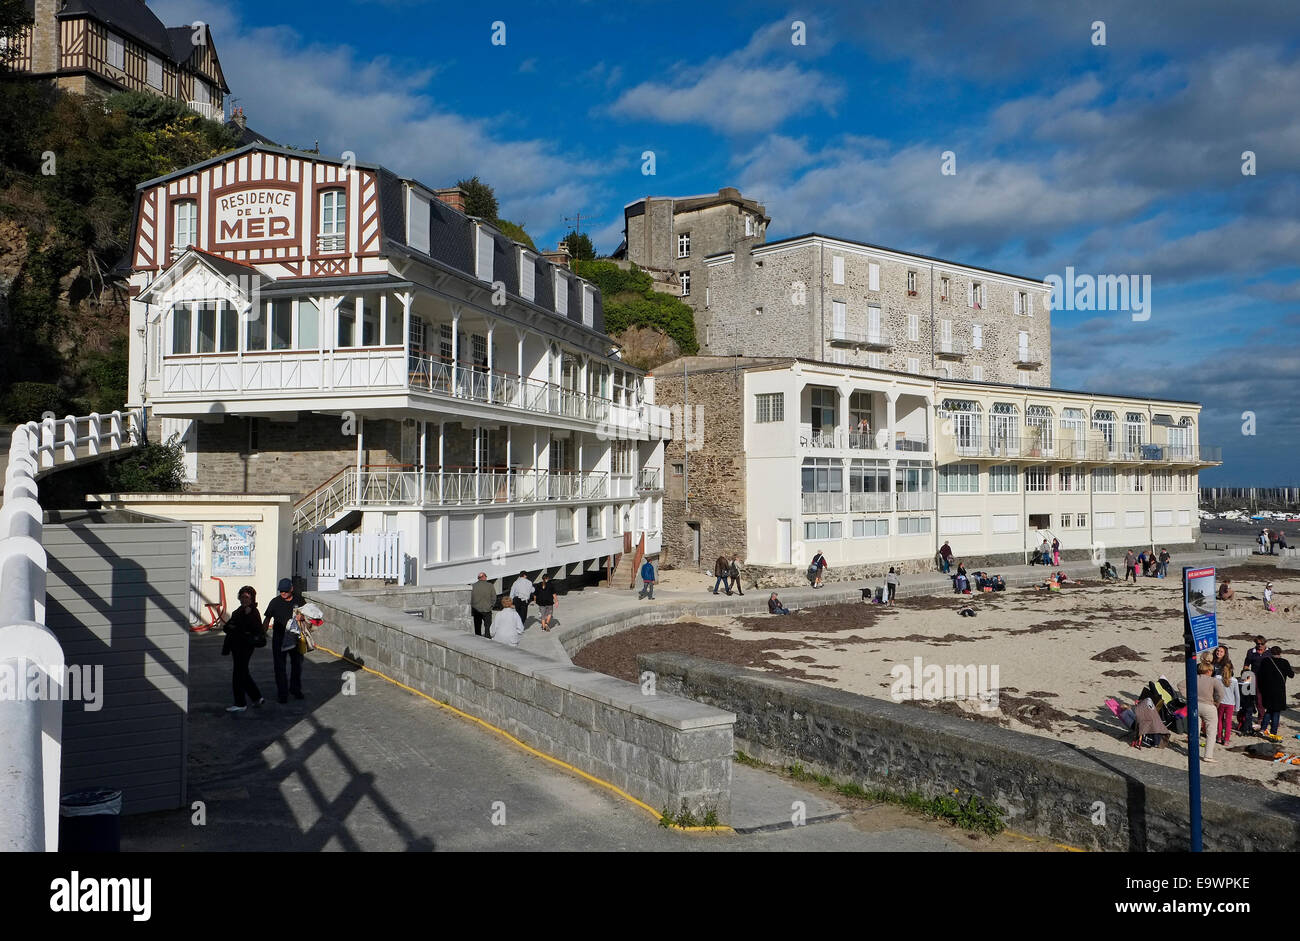 St Cast Le Guildo, Brittany, France Stock Photo, Royalty